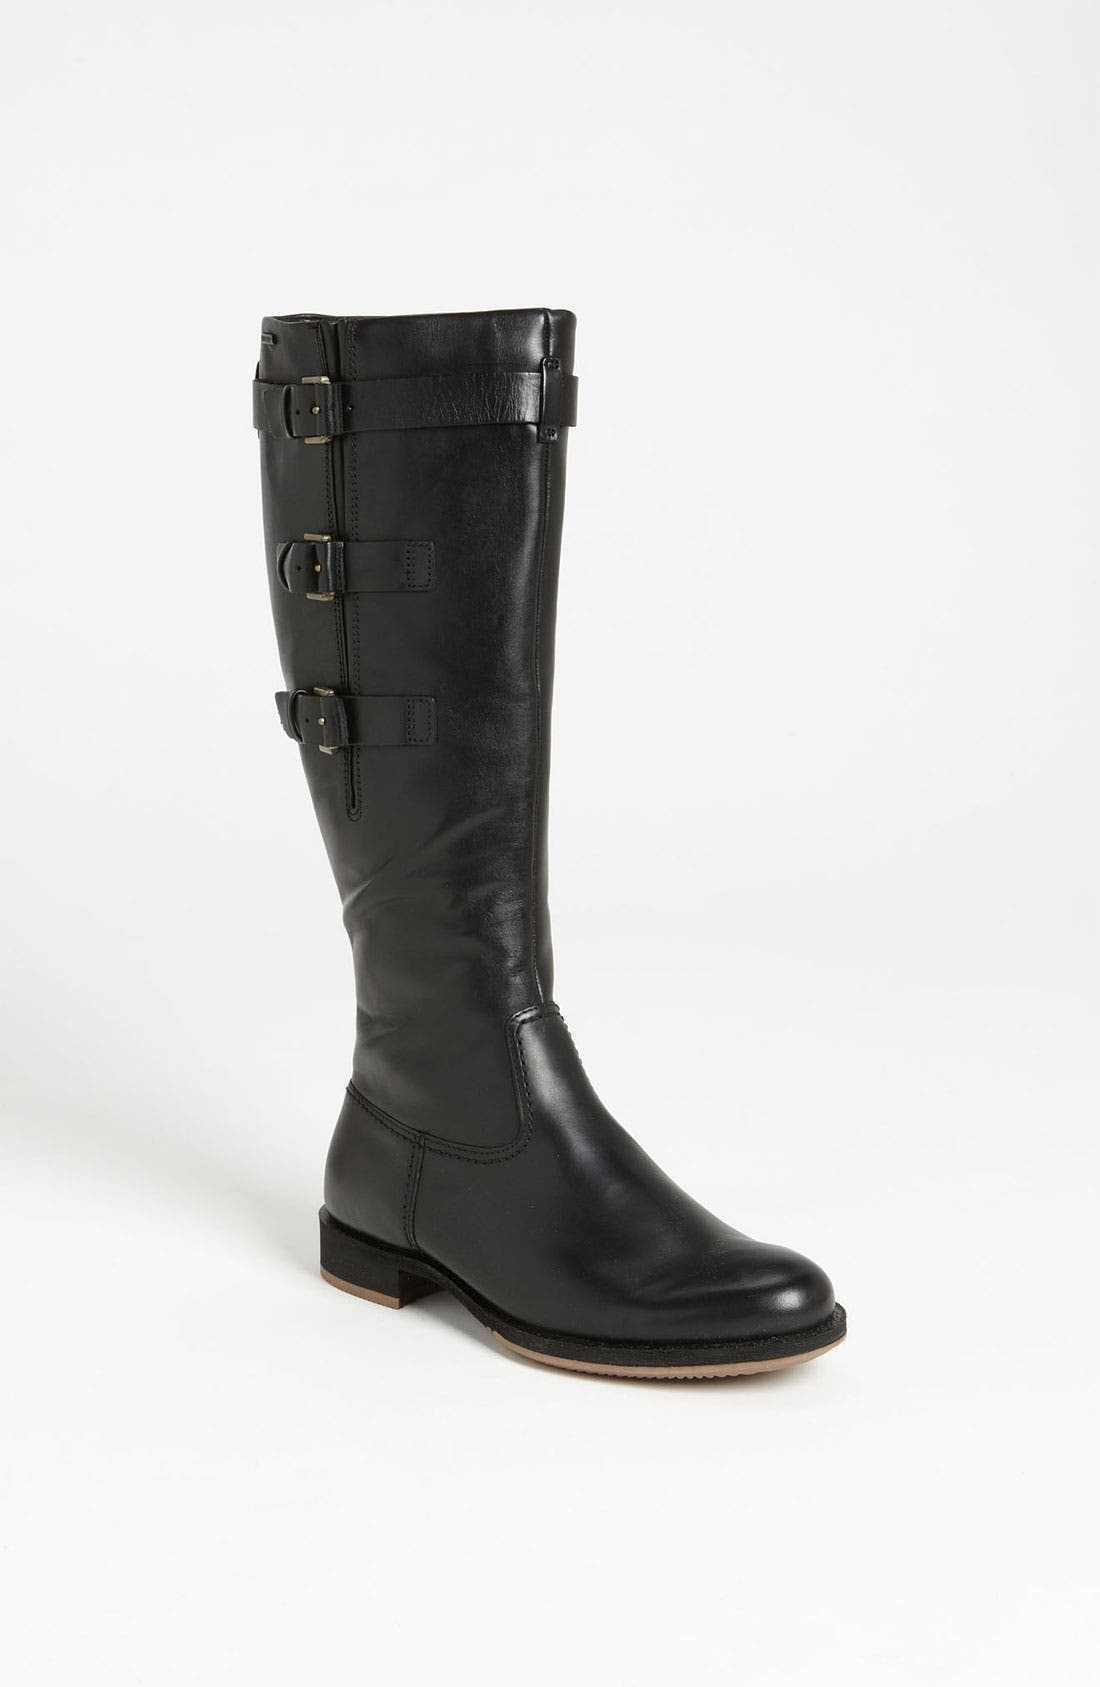 Main Image - ECCO 'Saunter GTX Tall 3 Buckle' Boot